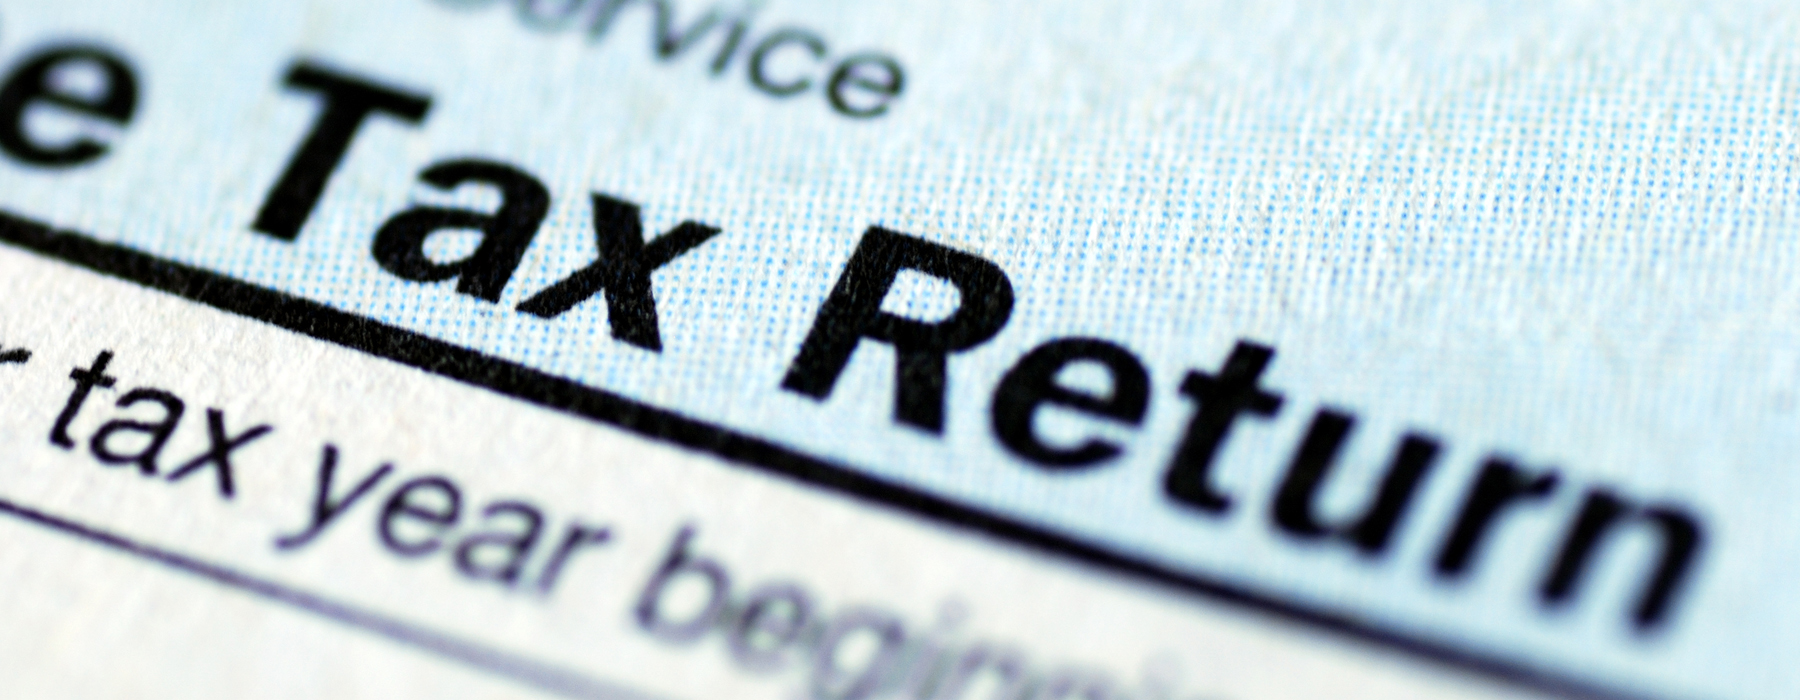 Horry county personal property tax return